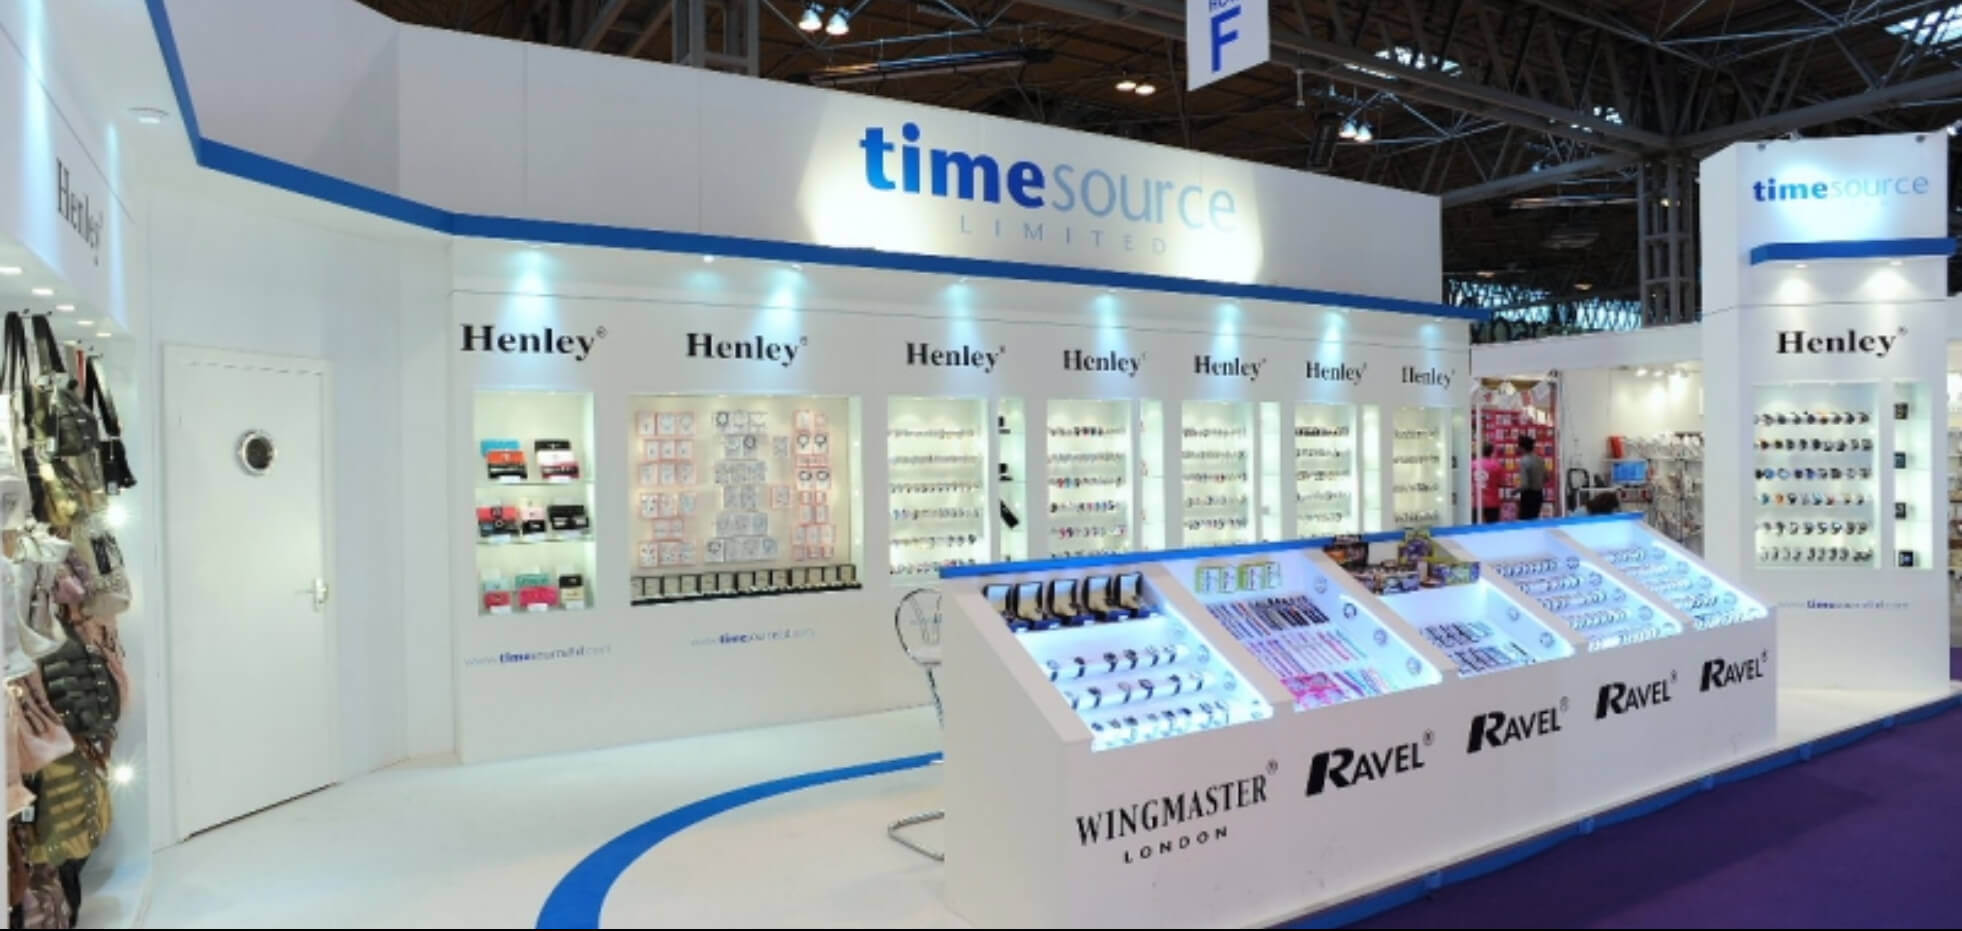 Time Source exhibition stand | Exhibit3sixty